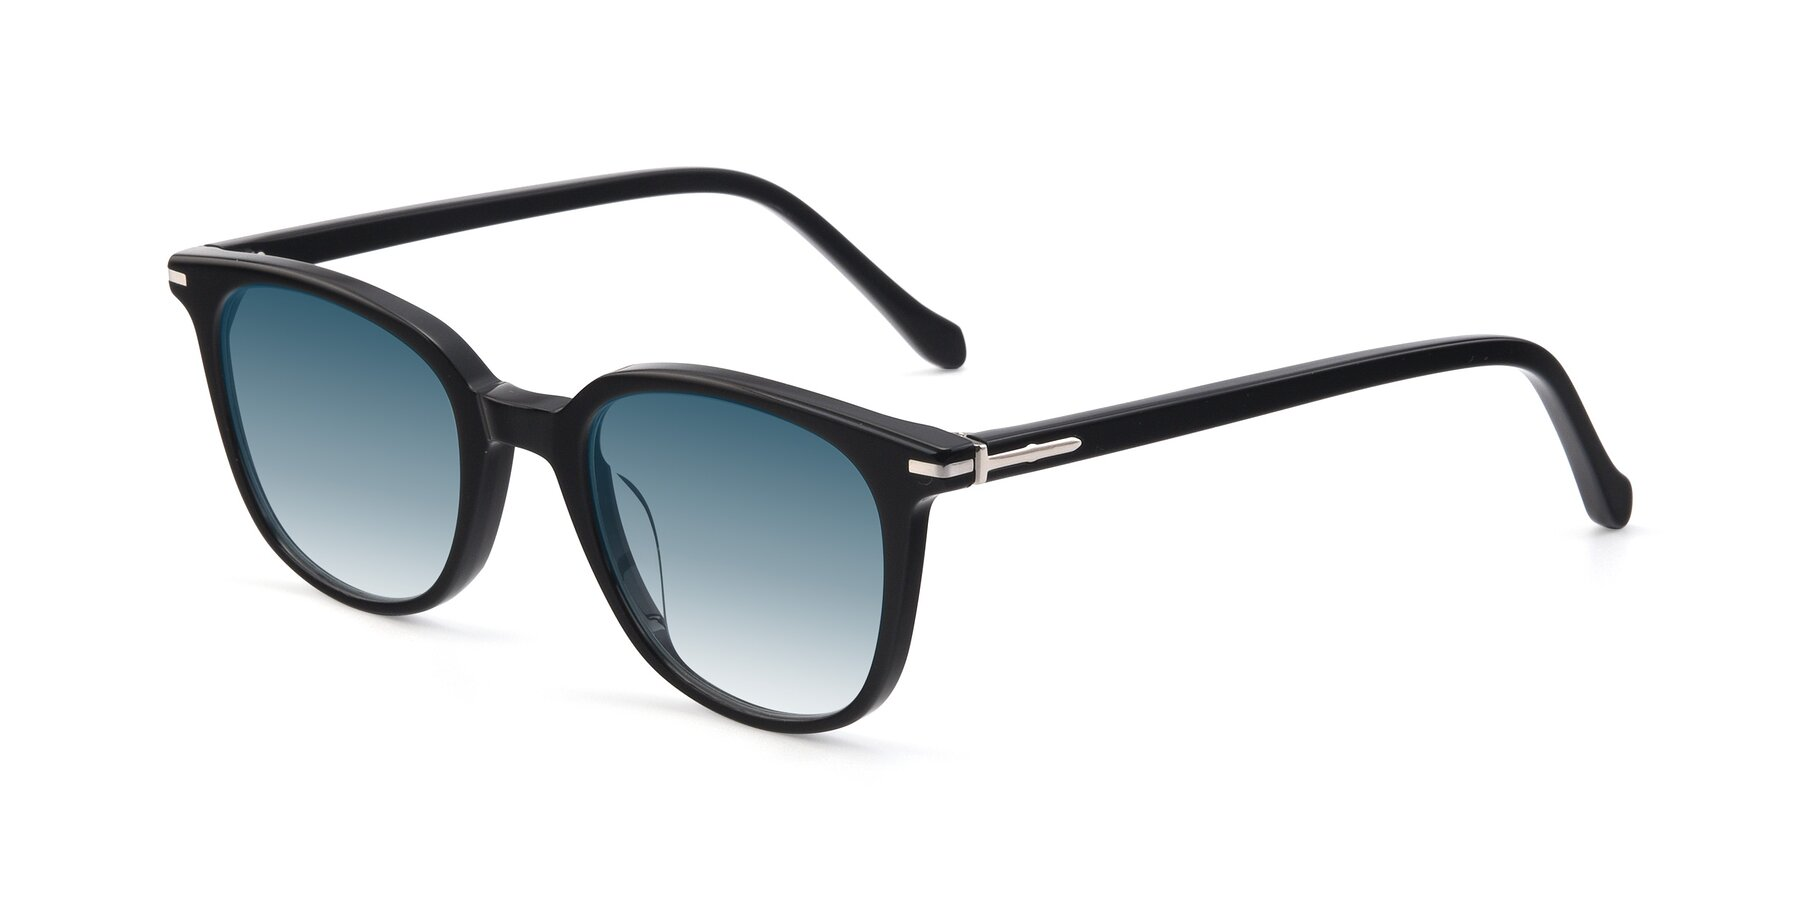 Angle of 17562 in Black with Blue Gradient Lenses